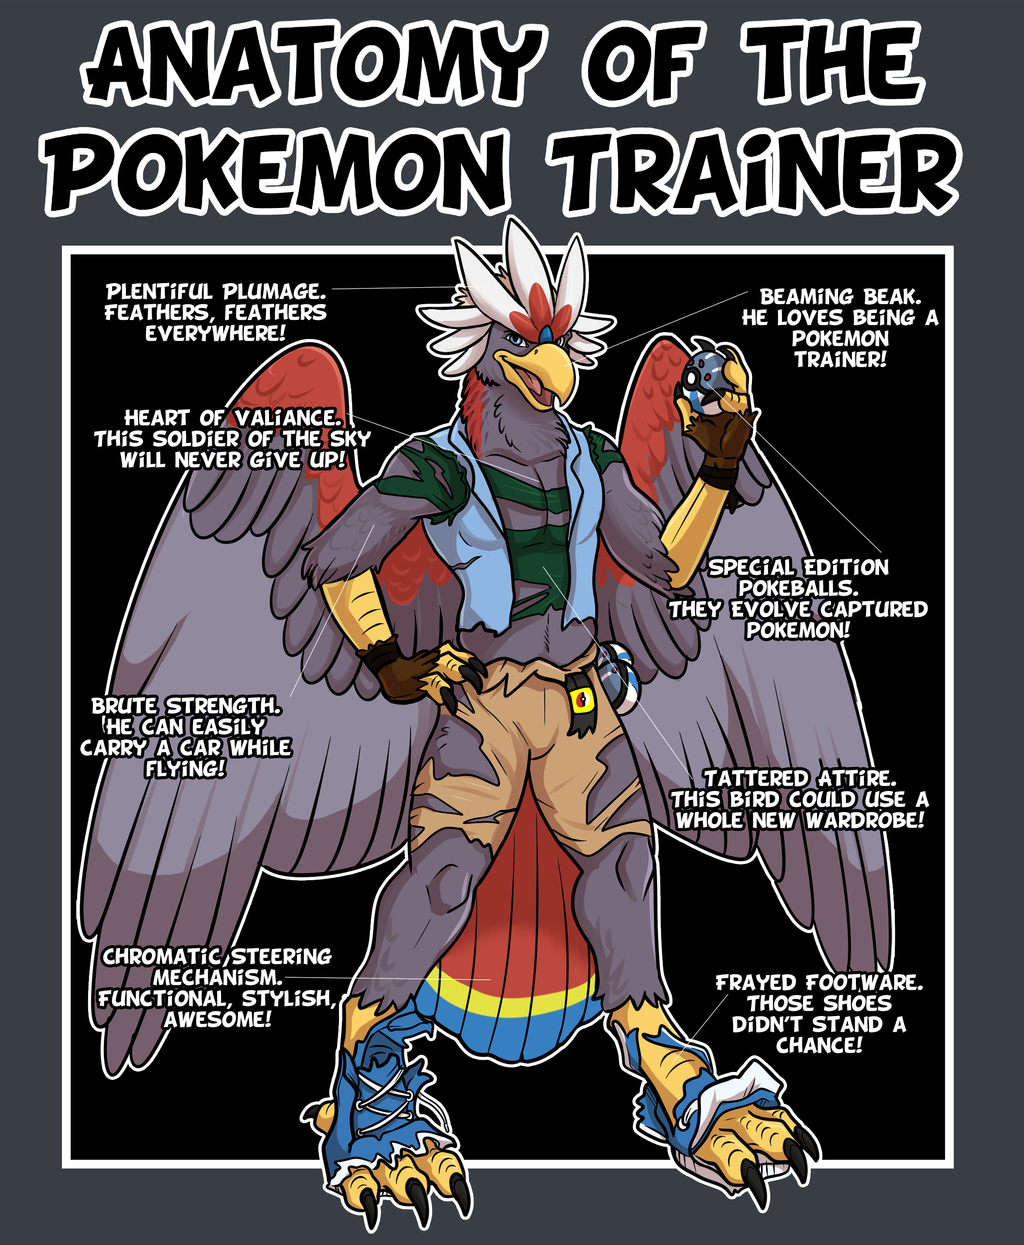 Anatomy Of The Pokemon Trainer By Pheagle Adler On Deviantart